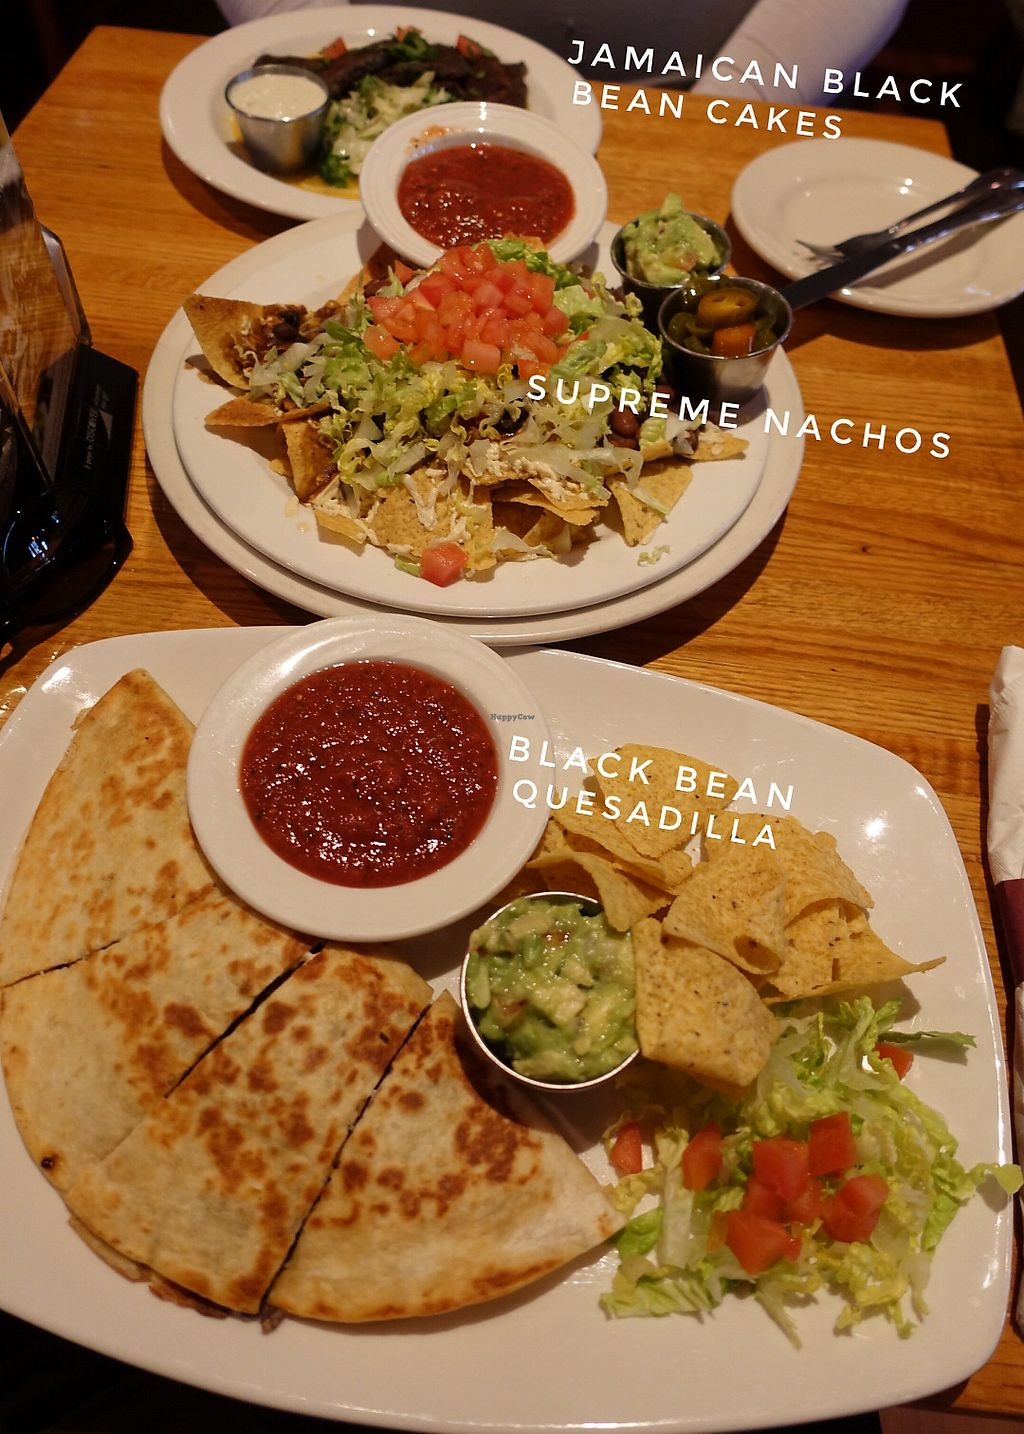 "Photo of Cafe Sunflower  by <a href=""/members/profile/E%26J%E2%80%99sAdventure%21"">E&J'sAdventure!</a> <br/>Lunch dishes <br/> January 28, 2018  - <a href='/contact/abuse/image/1874/351709'>Report</a>"